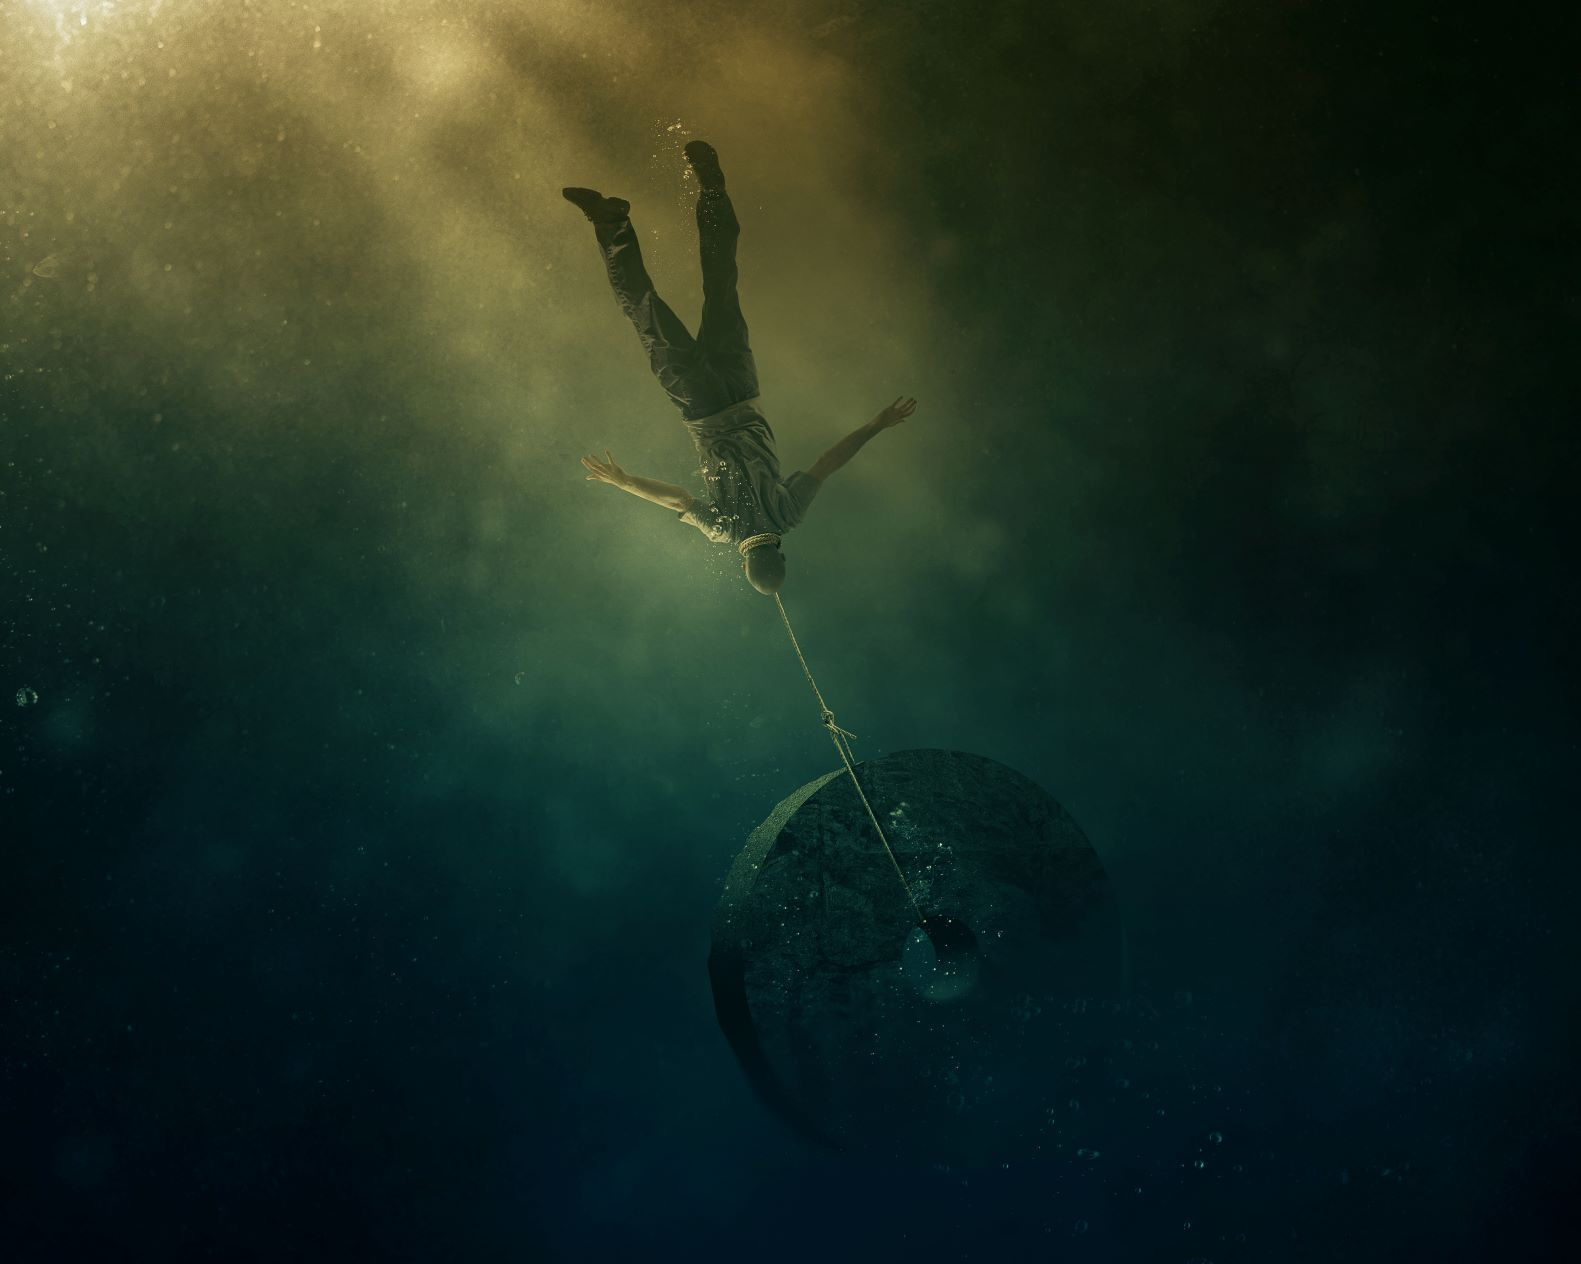 a-man-falls-into-the-ocean-with-a-heavy-stone-tied-to-him_SikZNH3t8Px